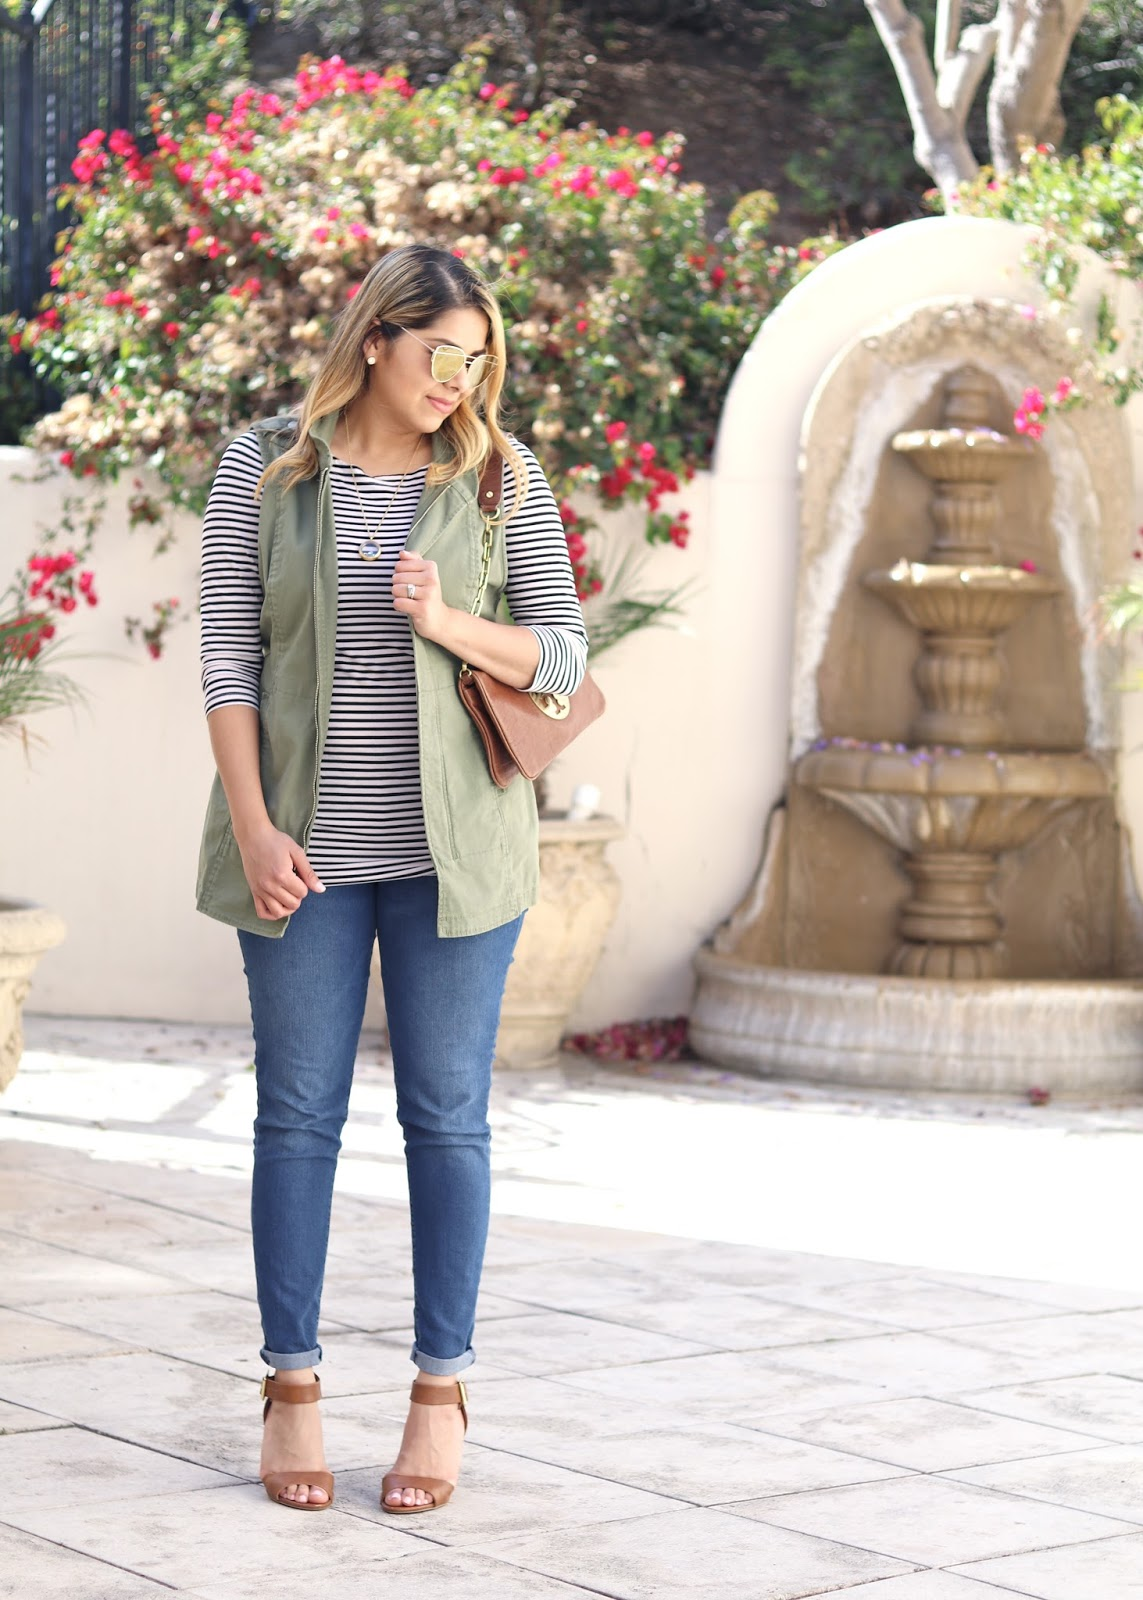 Utility Vest and Stripes Outfit, Cabi Explorer Vest, Cabi Blogger, San Diego Fashion Blogger